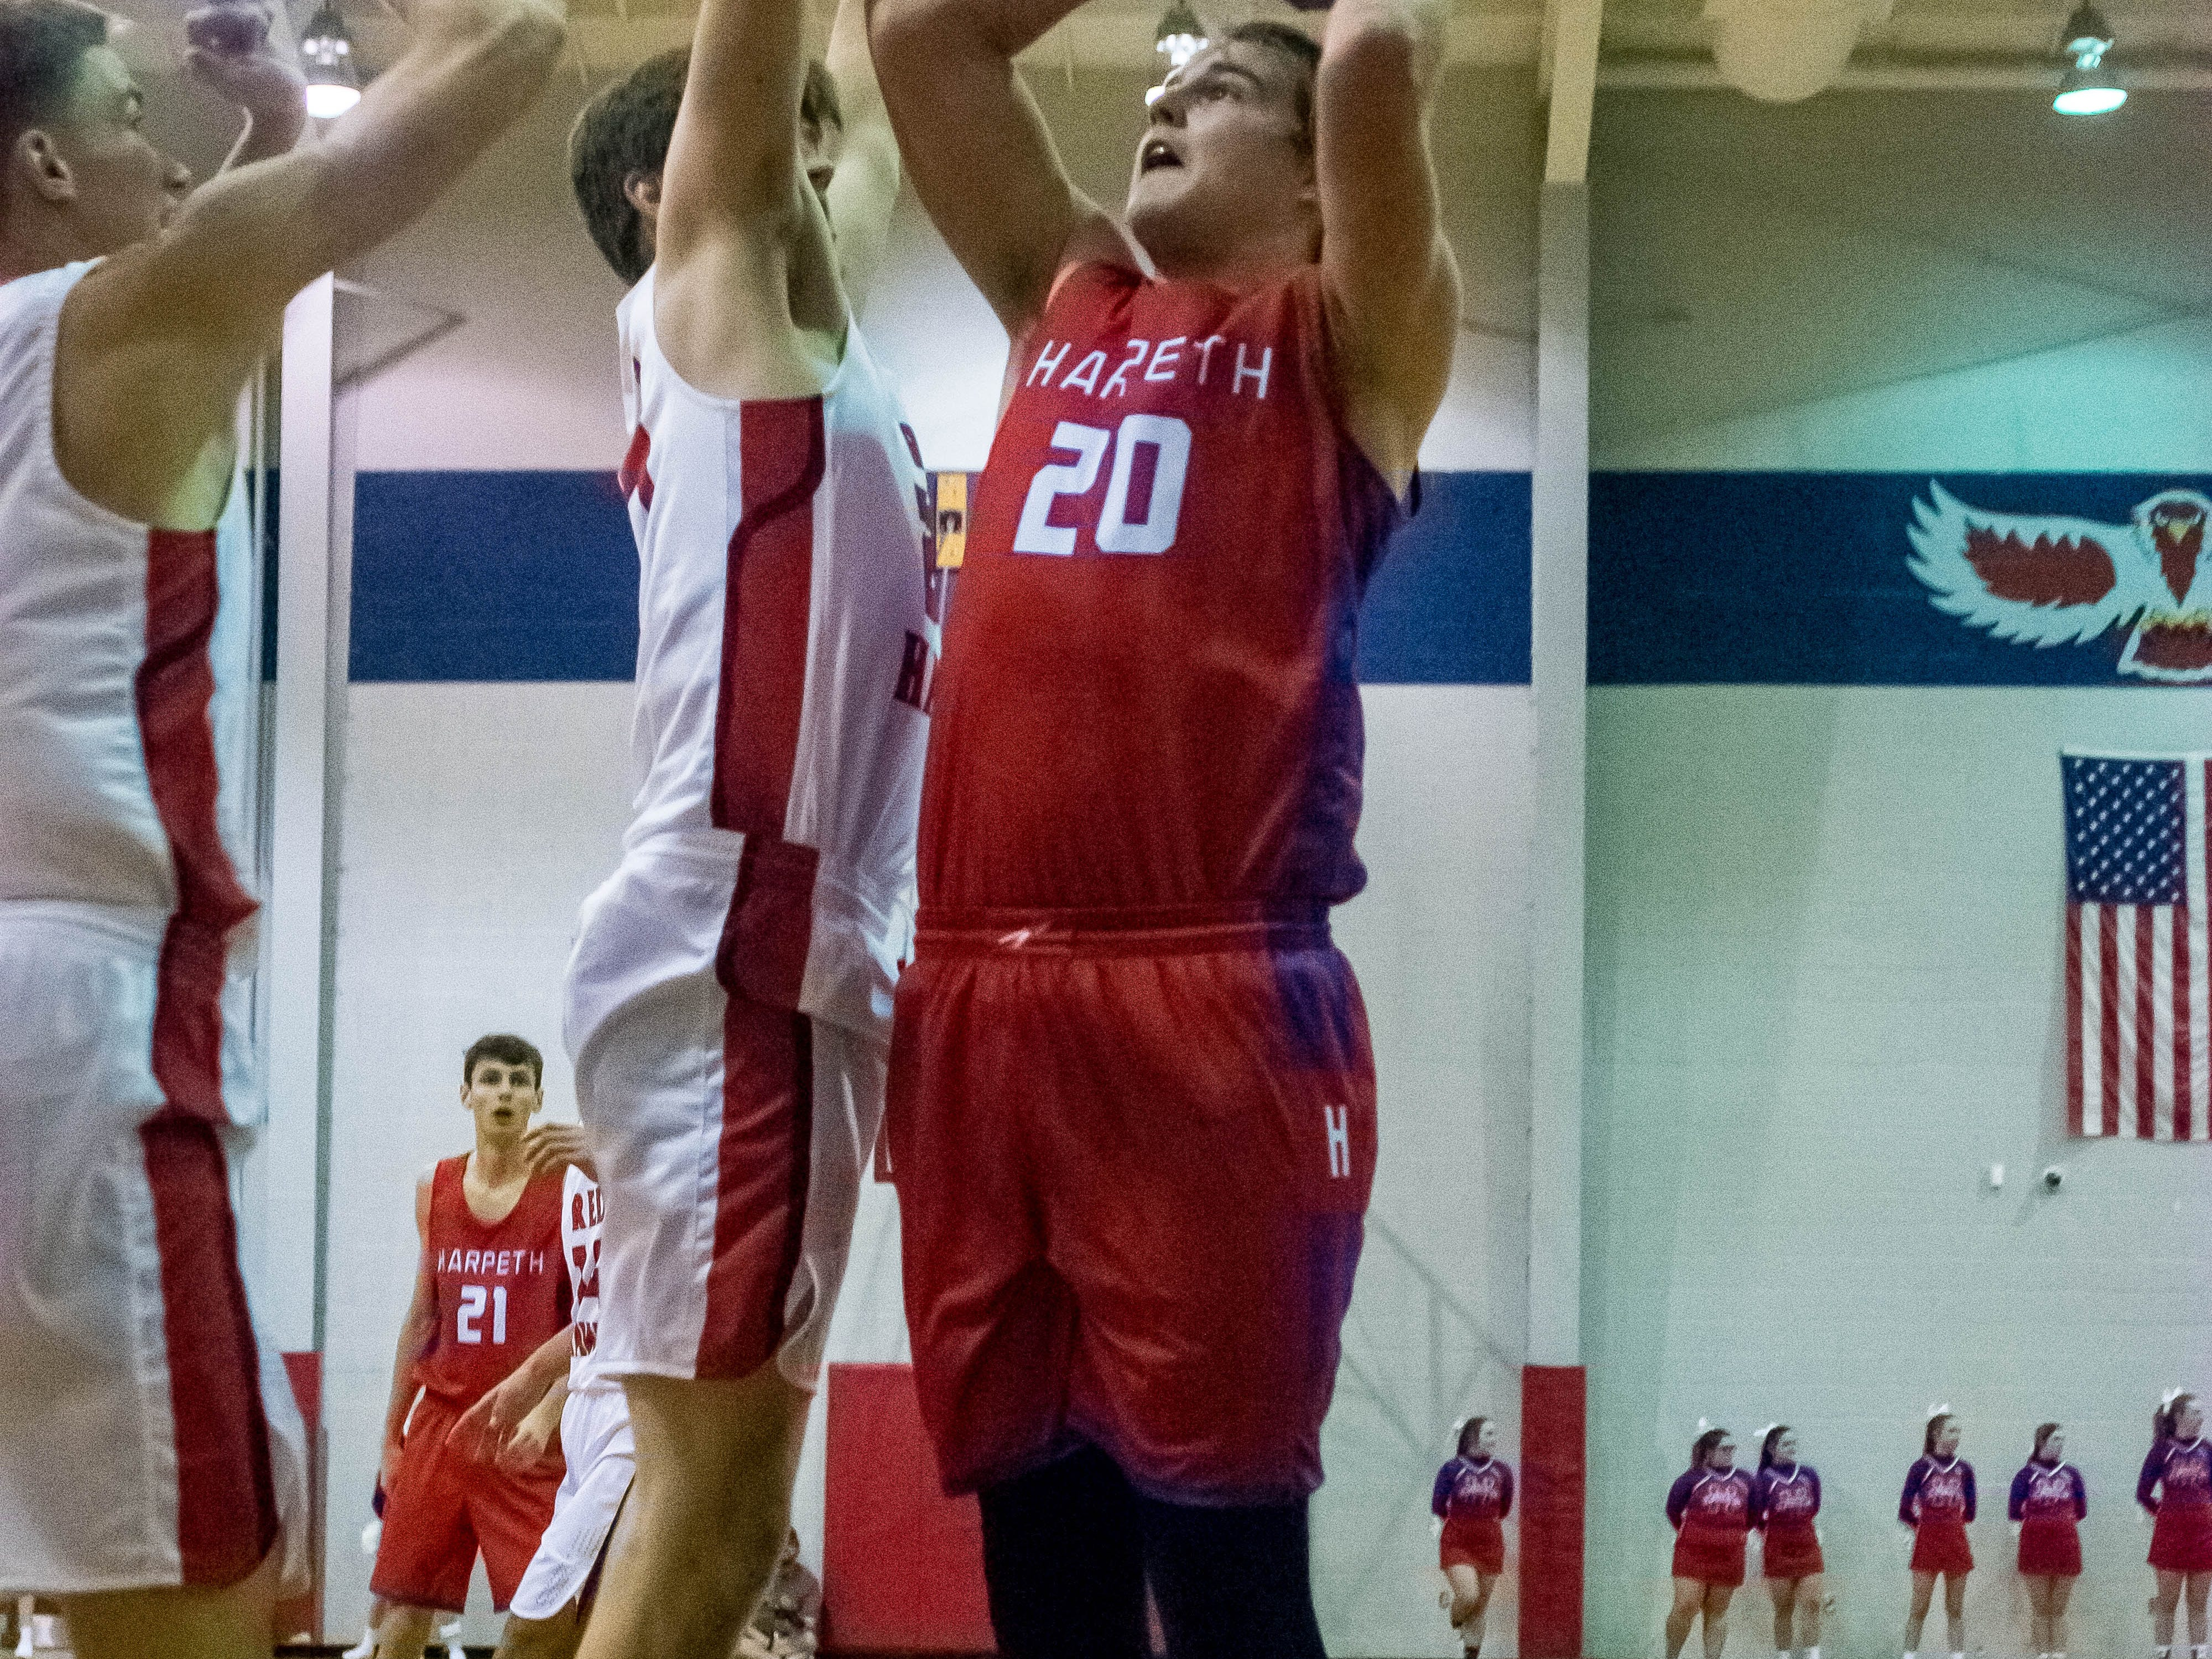 Harpeth Senior #20 Chace Taylor putting up a shot.